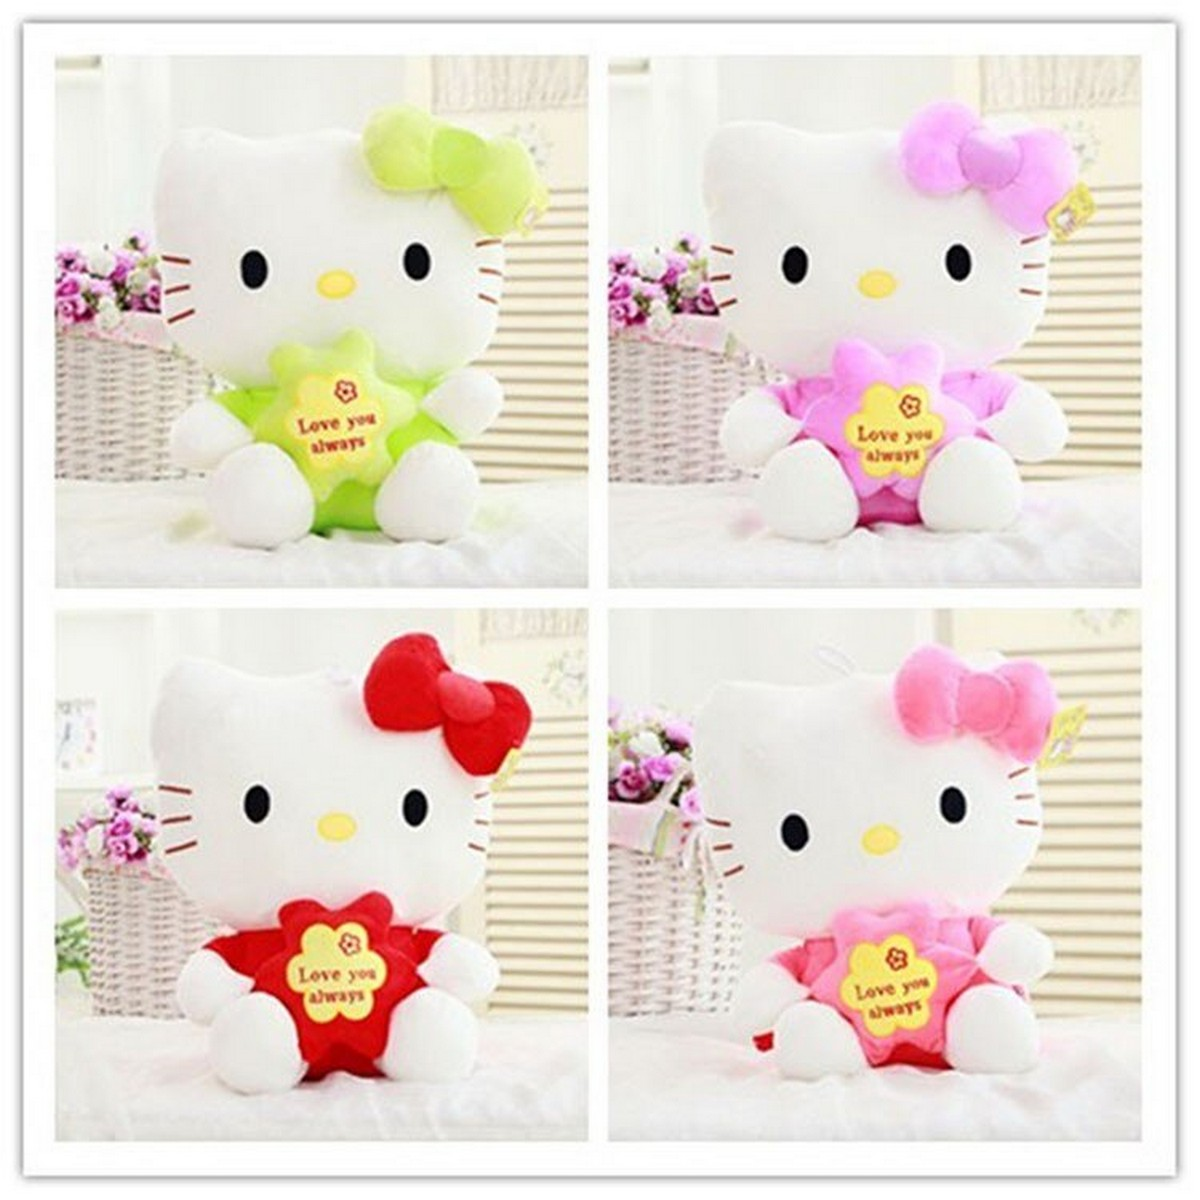 Hello Kitty Plush Toys Star Hello Kitty Doll Four Colors Small LORI Favorite Gift Party Gifts